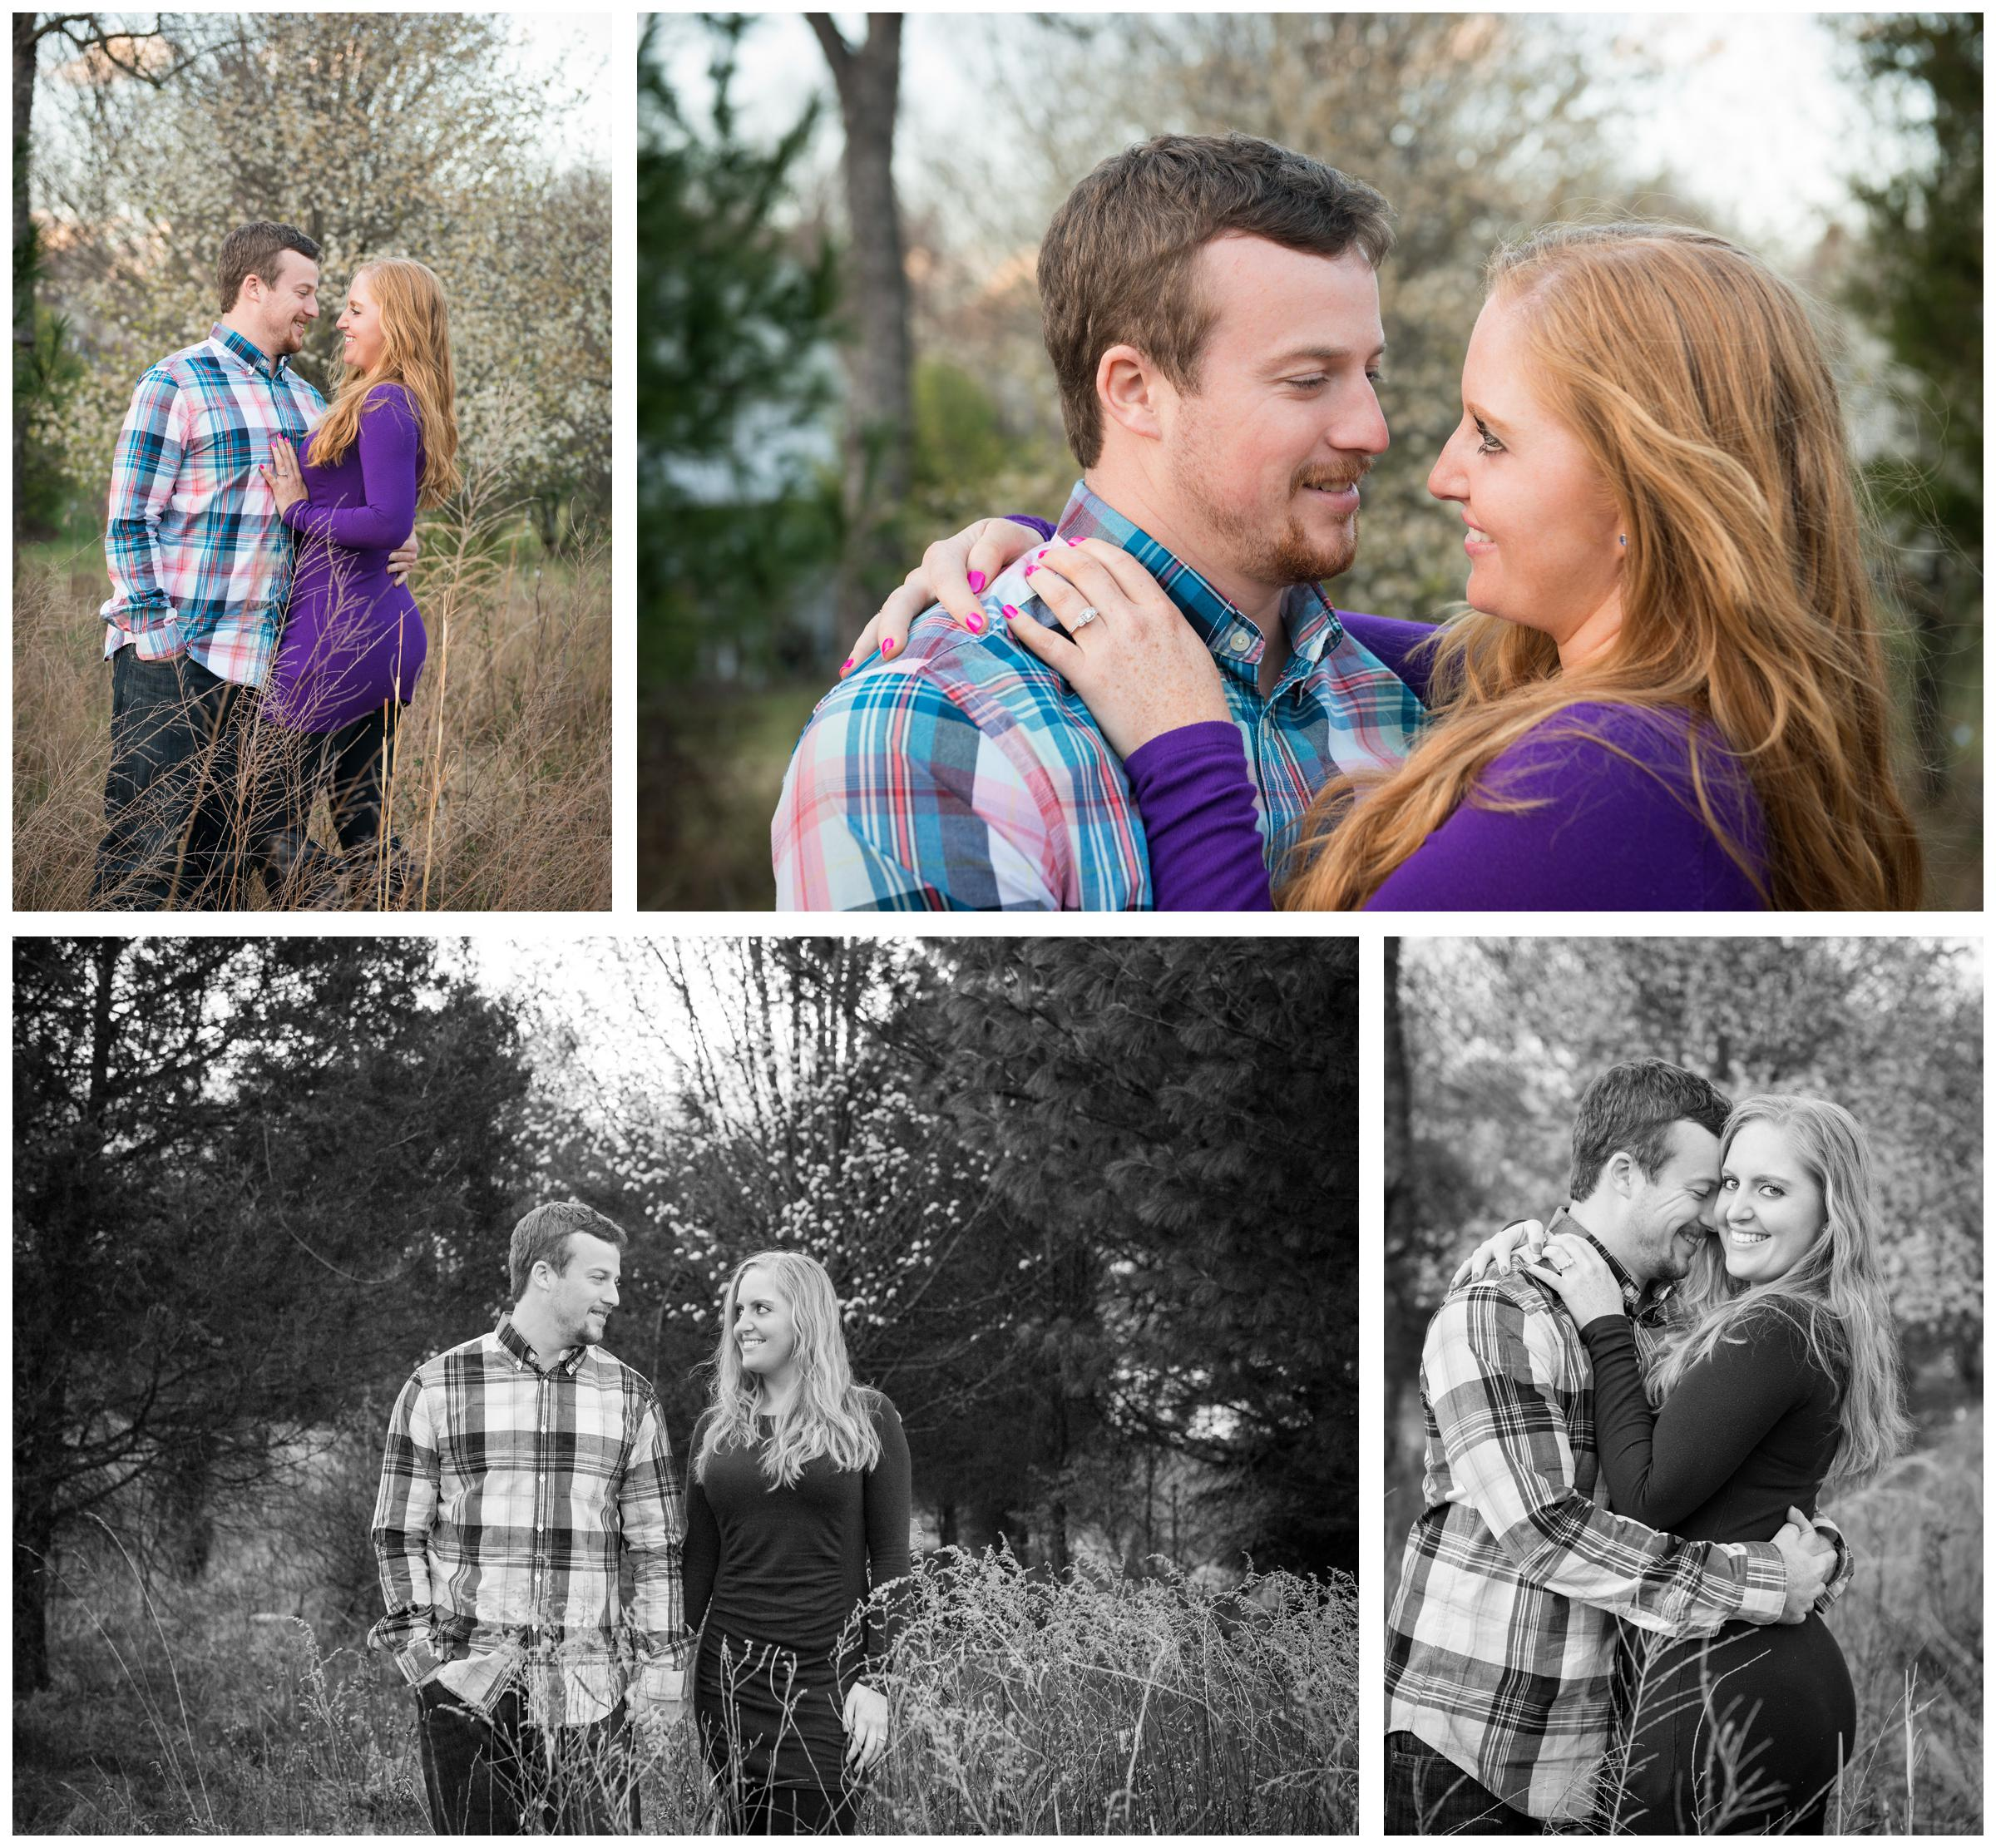 Spring engagement photos of couple in Rockville, Maryland near cherry trees